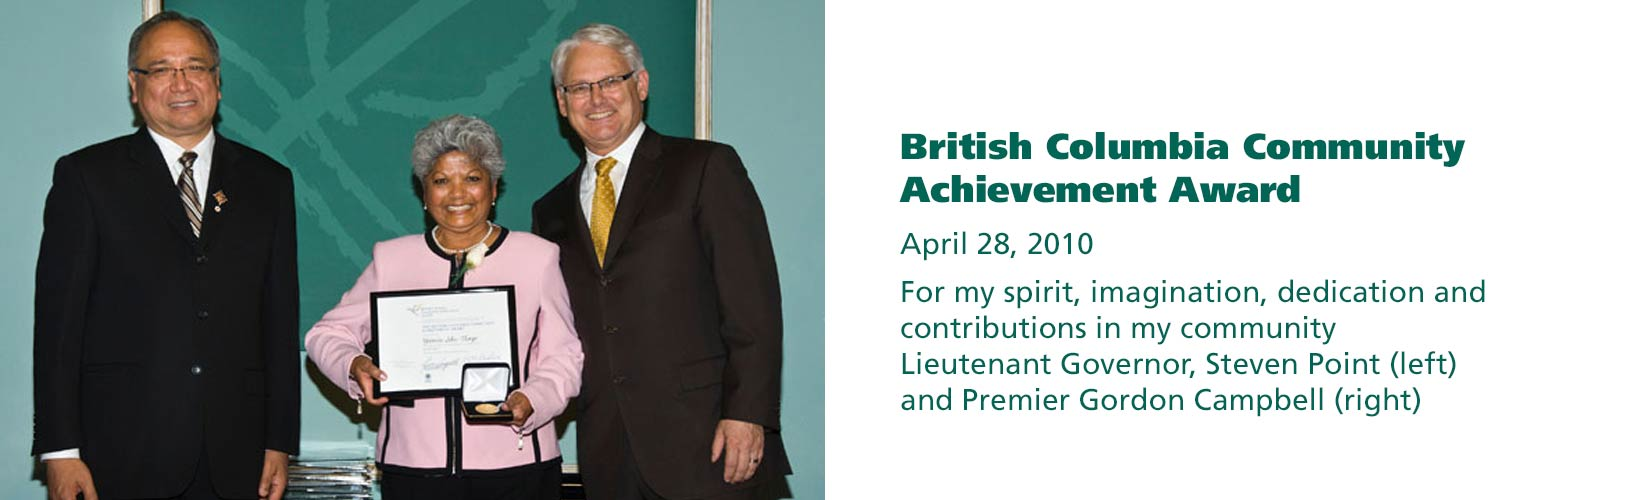 Yasmin receiving the British Columbia Community Achievement Award